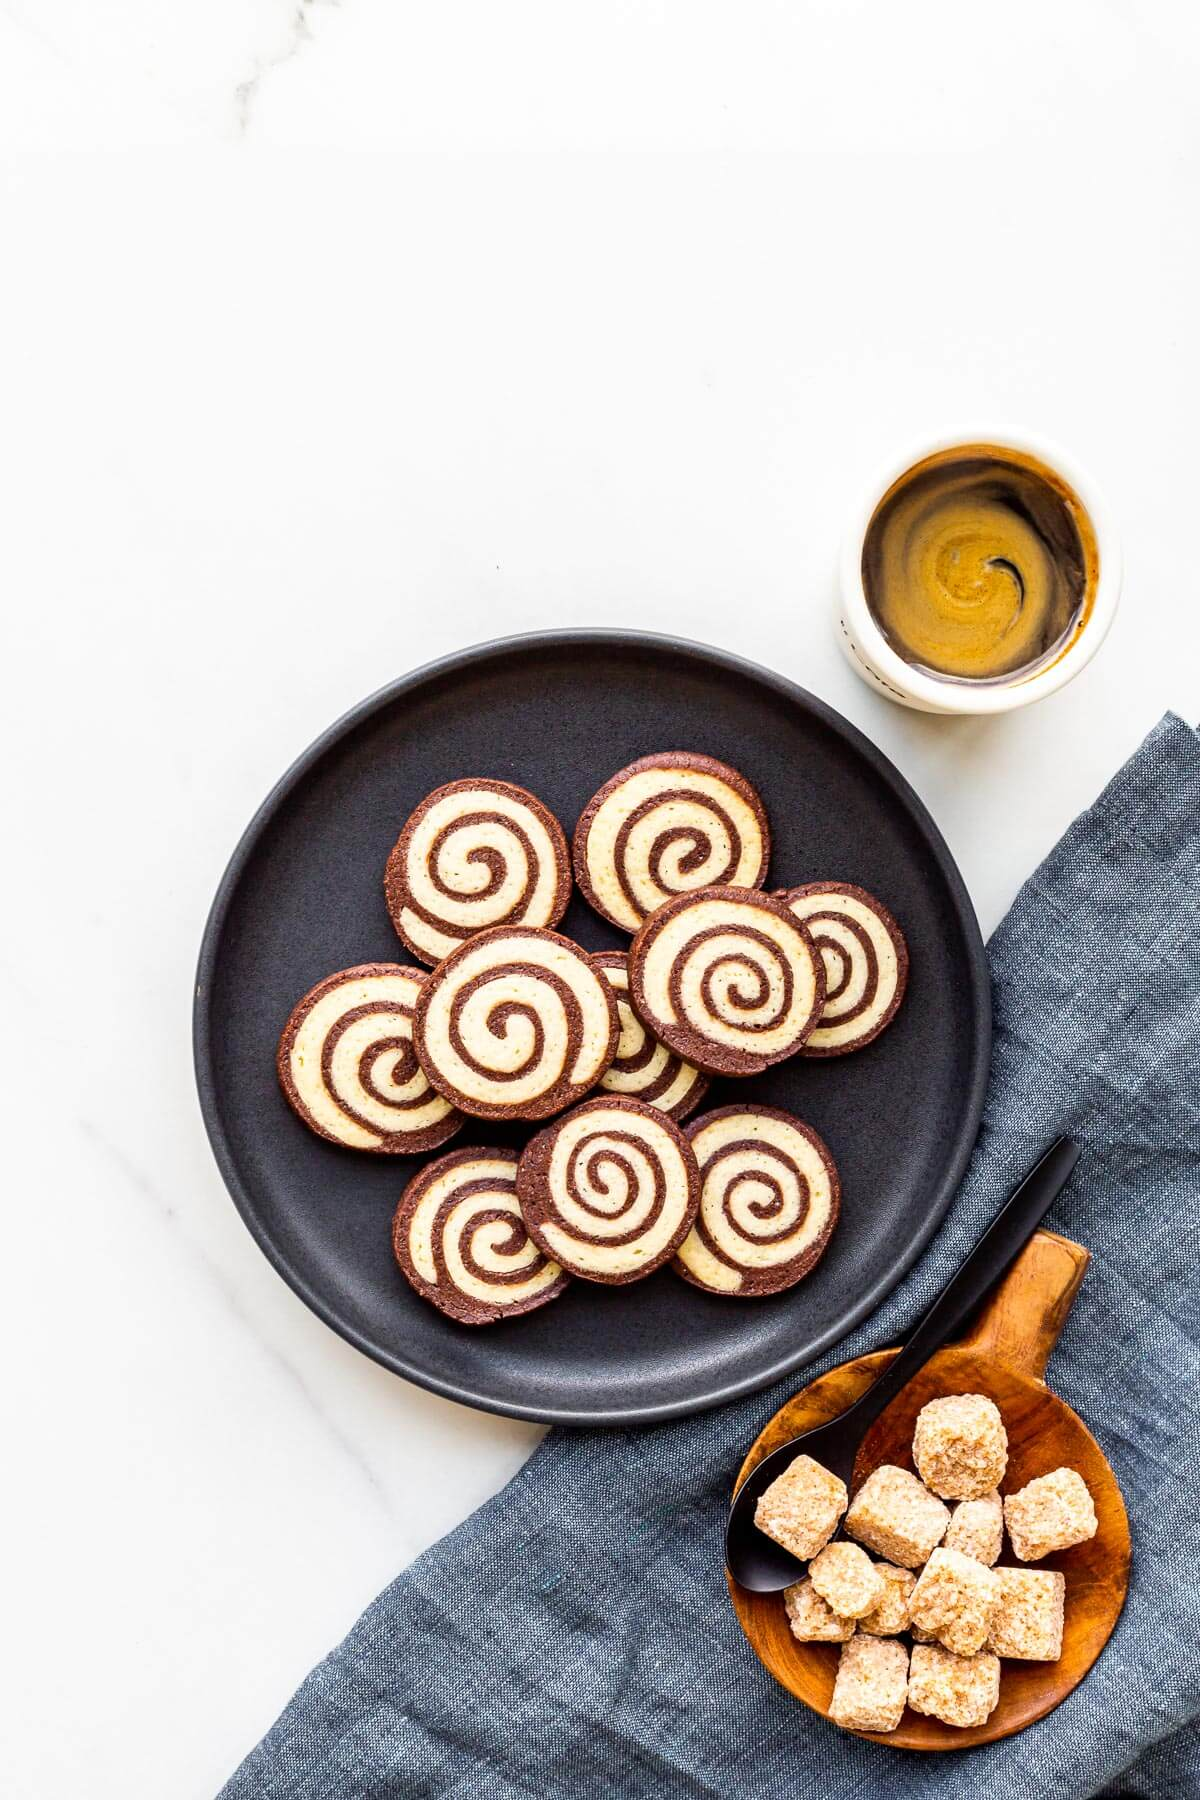 A plate of pinwheel cookies served with a cup of coffee and a bowl sugar cubes.